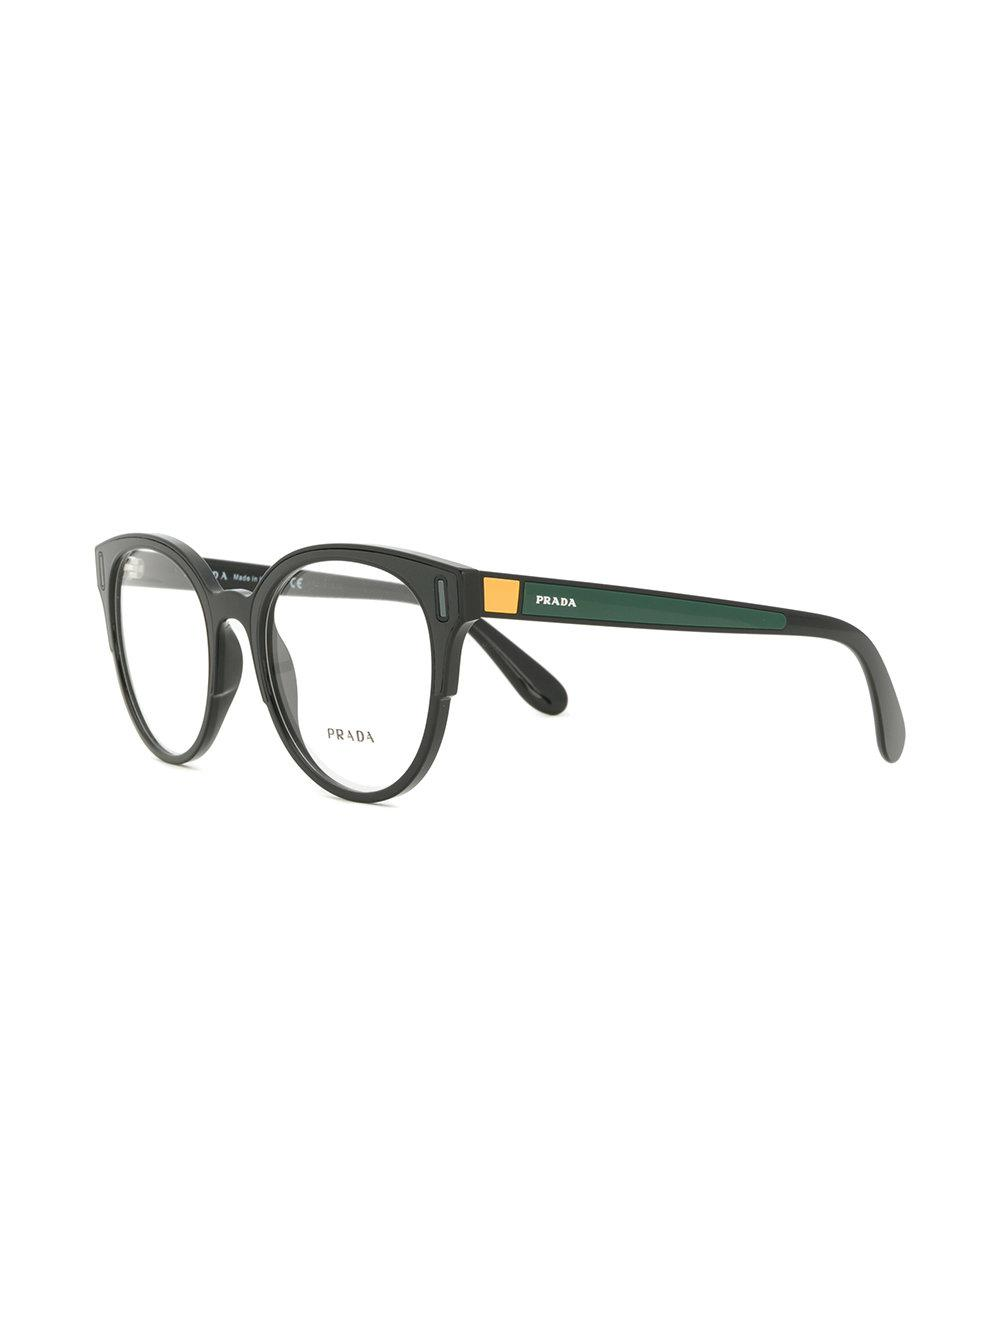 69c7d7d123f6 Prada Rounded Cat Eye Glasses in Black - Lyst